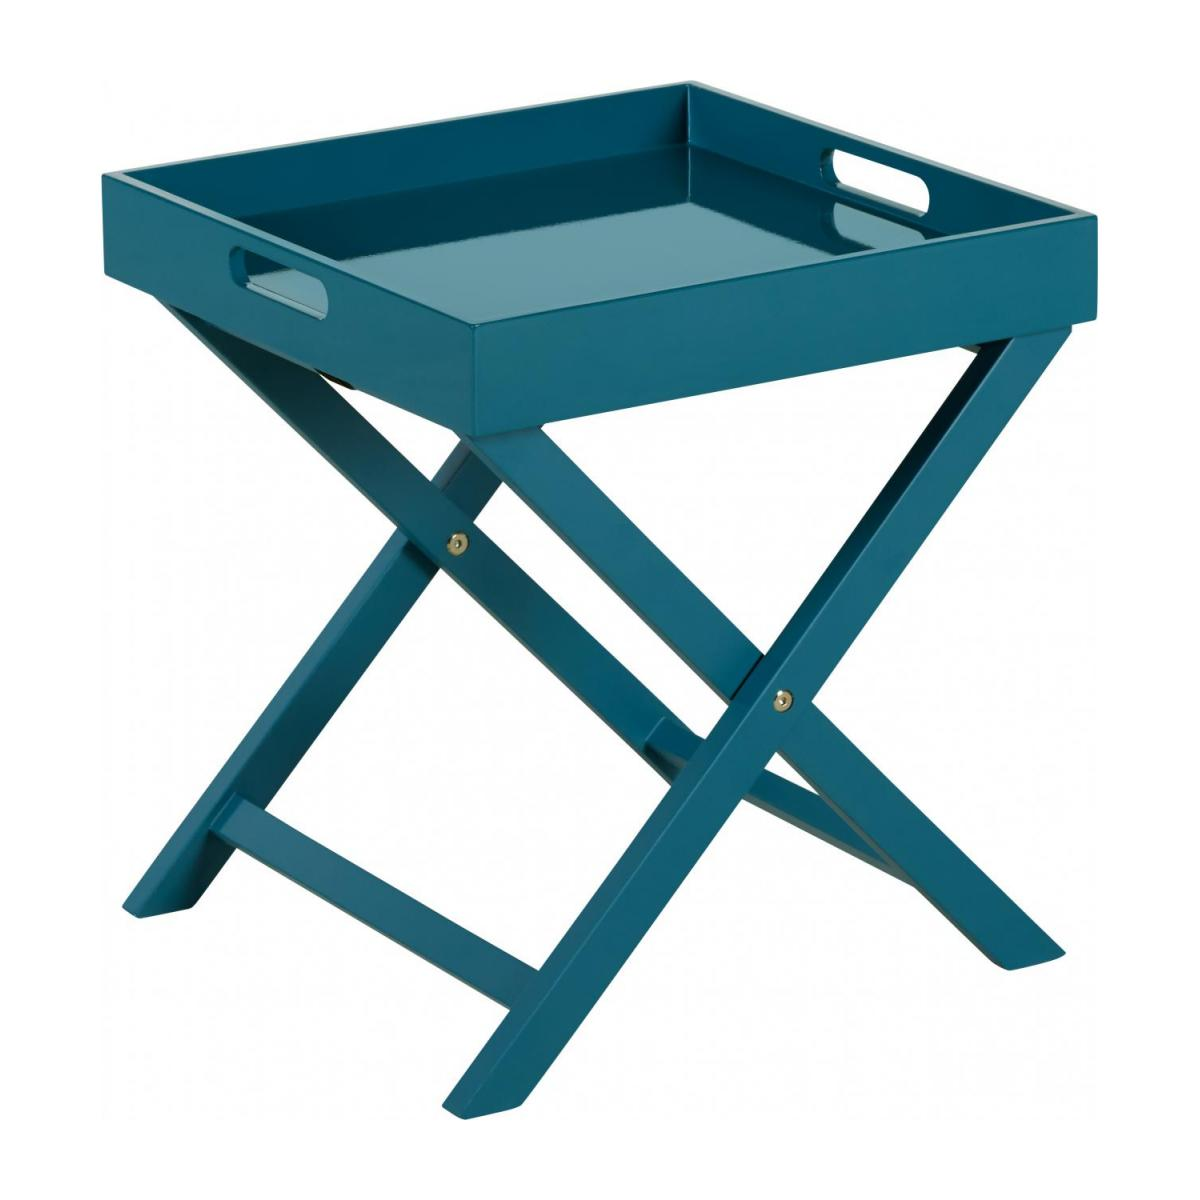 Table d'appoint - Bleu n°1